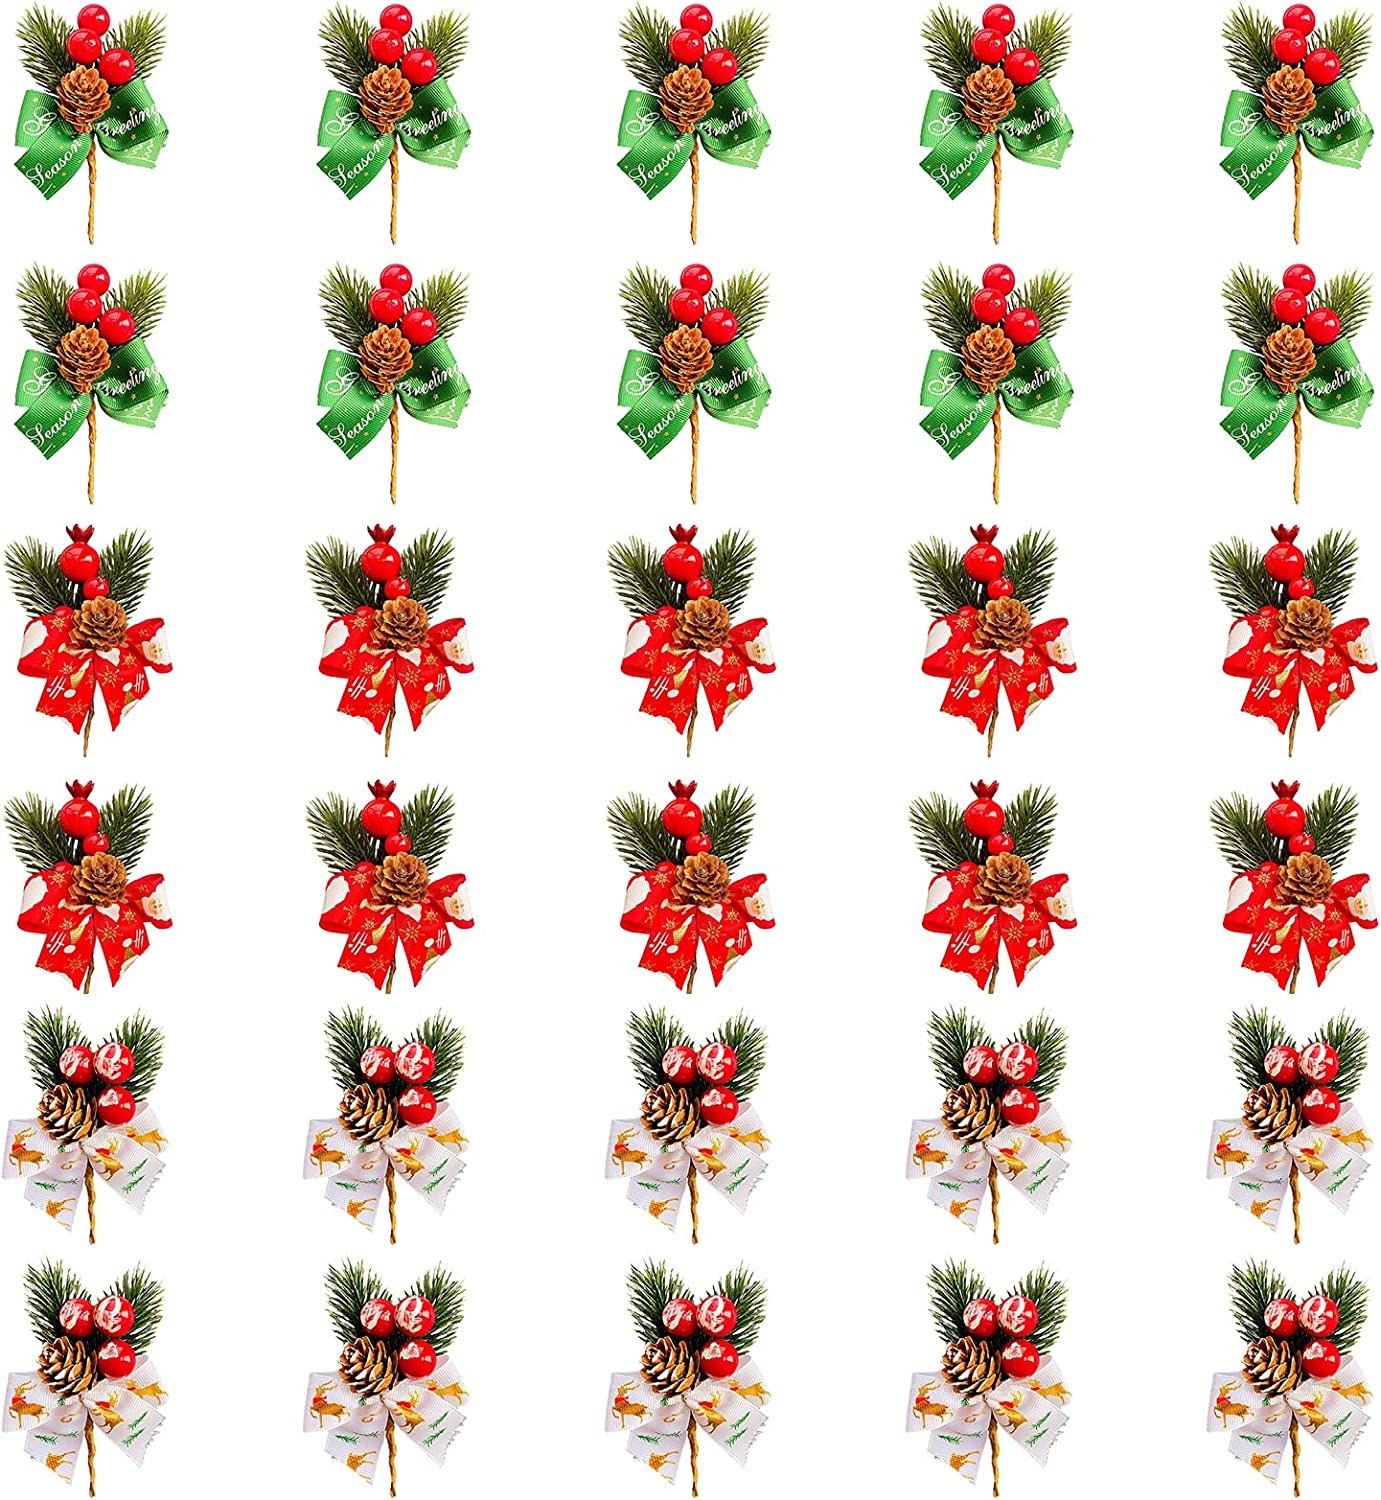 Plcnn Free Sale SALE% OFF shipping on posting reviews 30Pcs Christmas Red Berries Picks Artificial Ber Pine